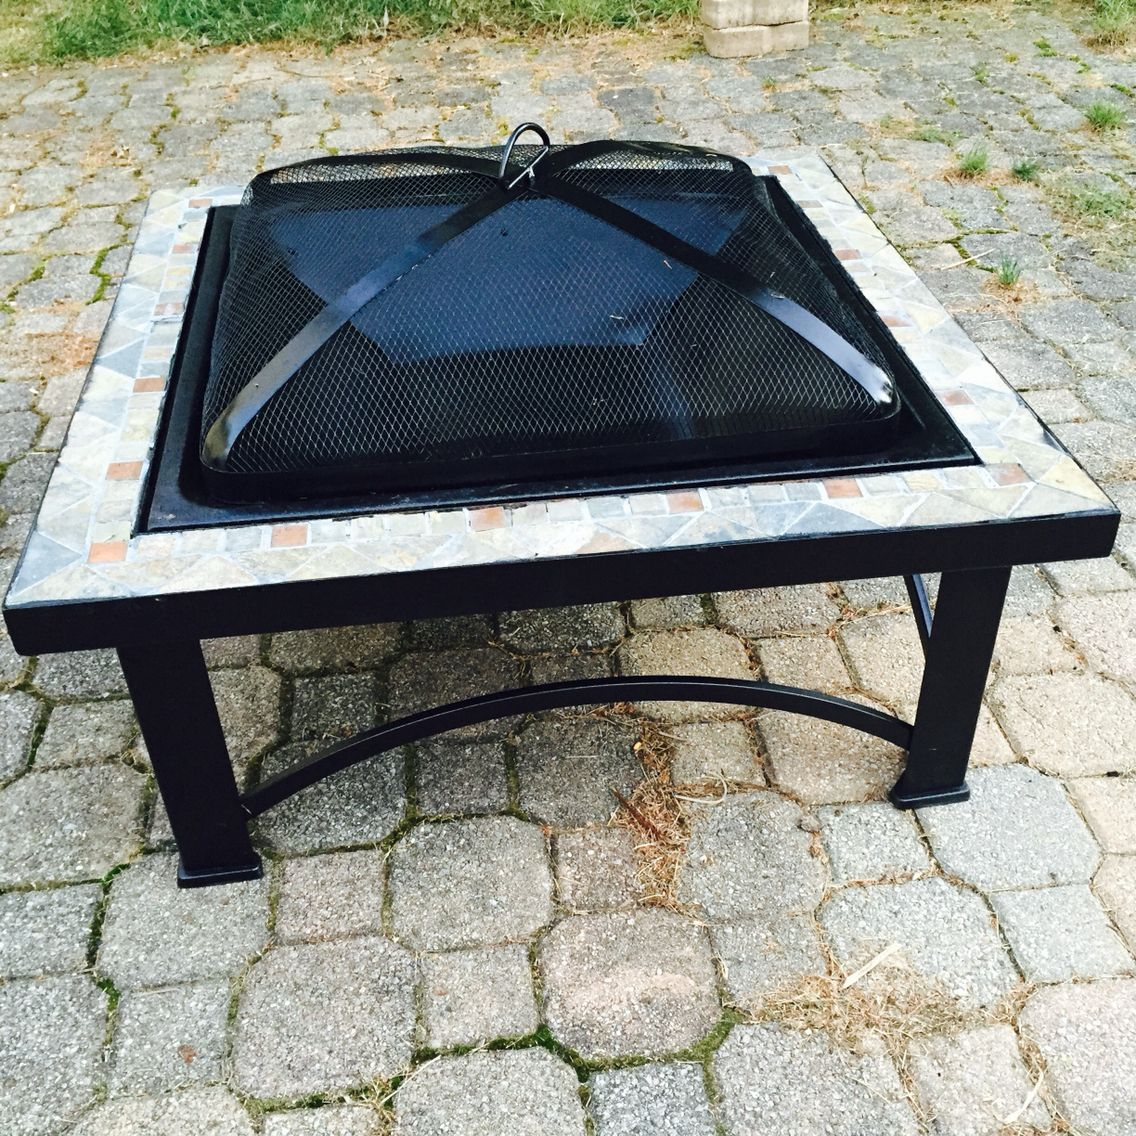 A Rusted 5 Yr Old Fire Pit From Aldi With A New Tray And High Heat Paint High Heat Paint Outdoor Tables Outdoor Decor